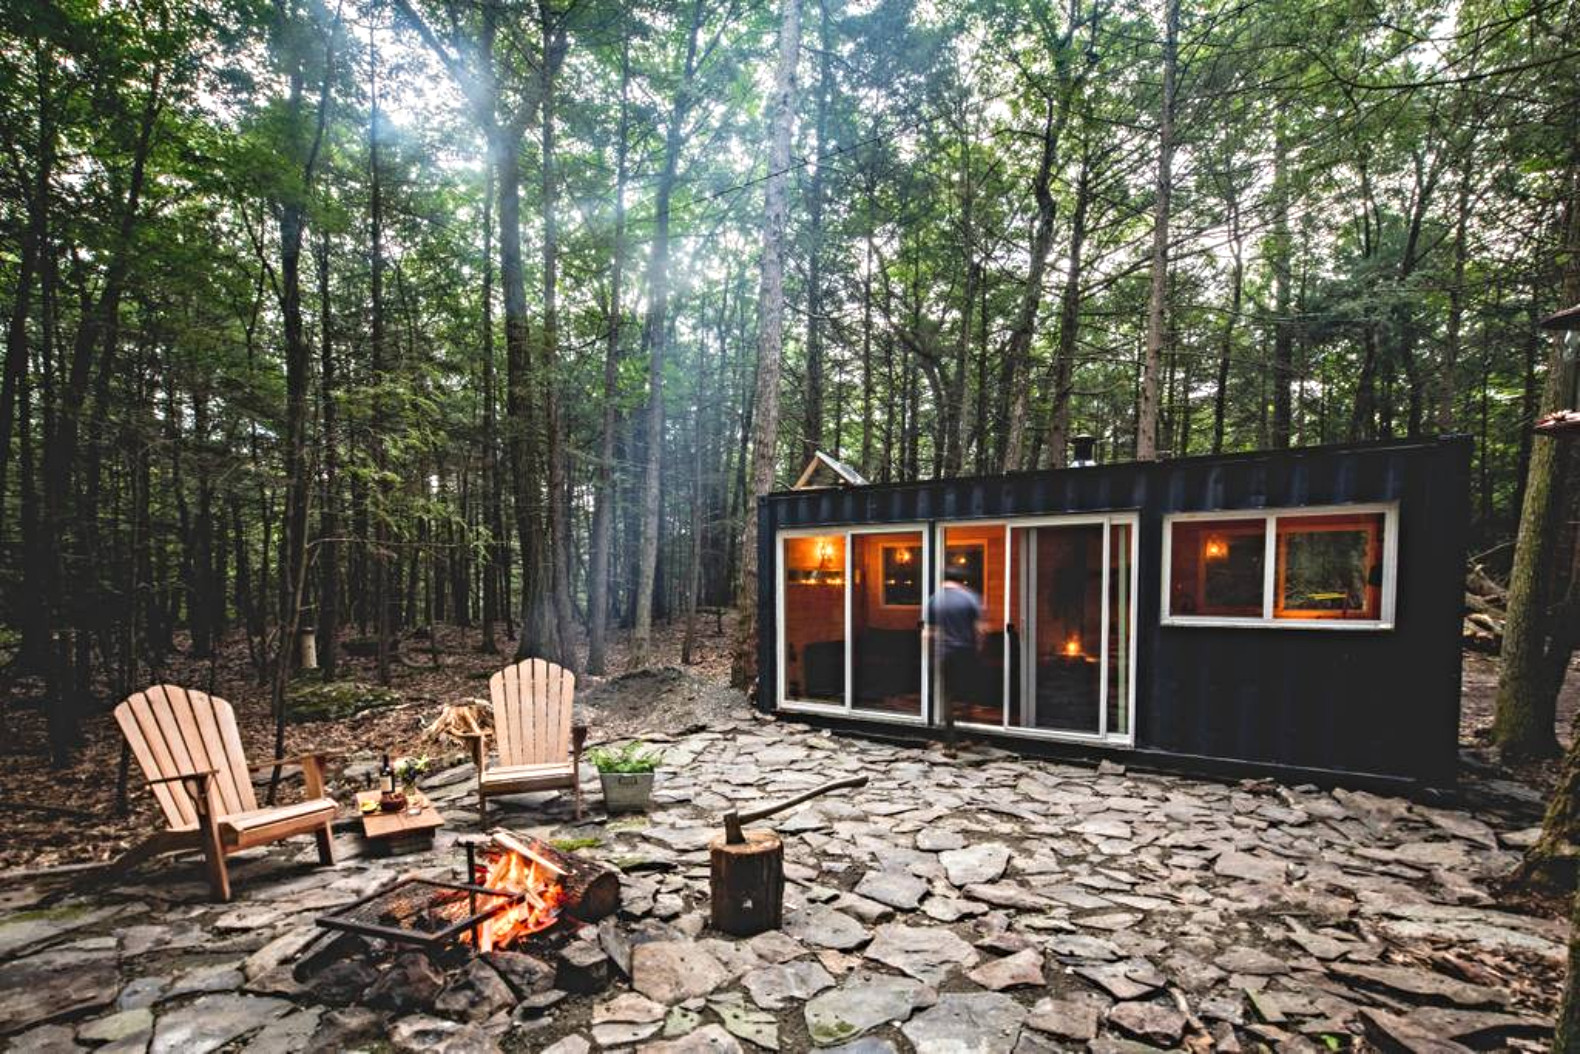 20-foot shipping container converted into off-grid oasis deep in the Catskills